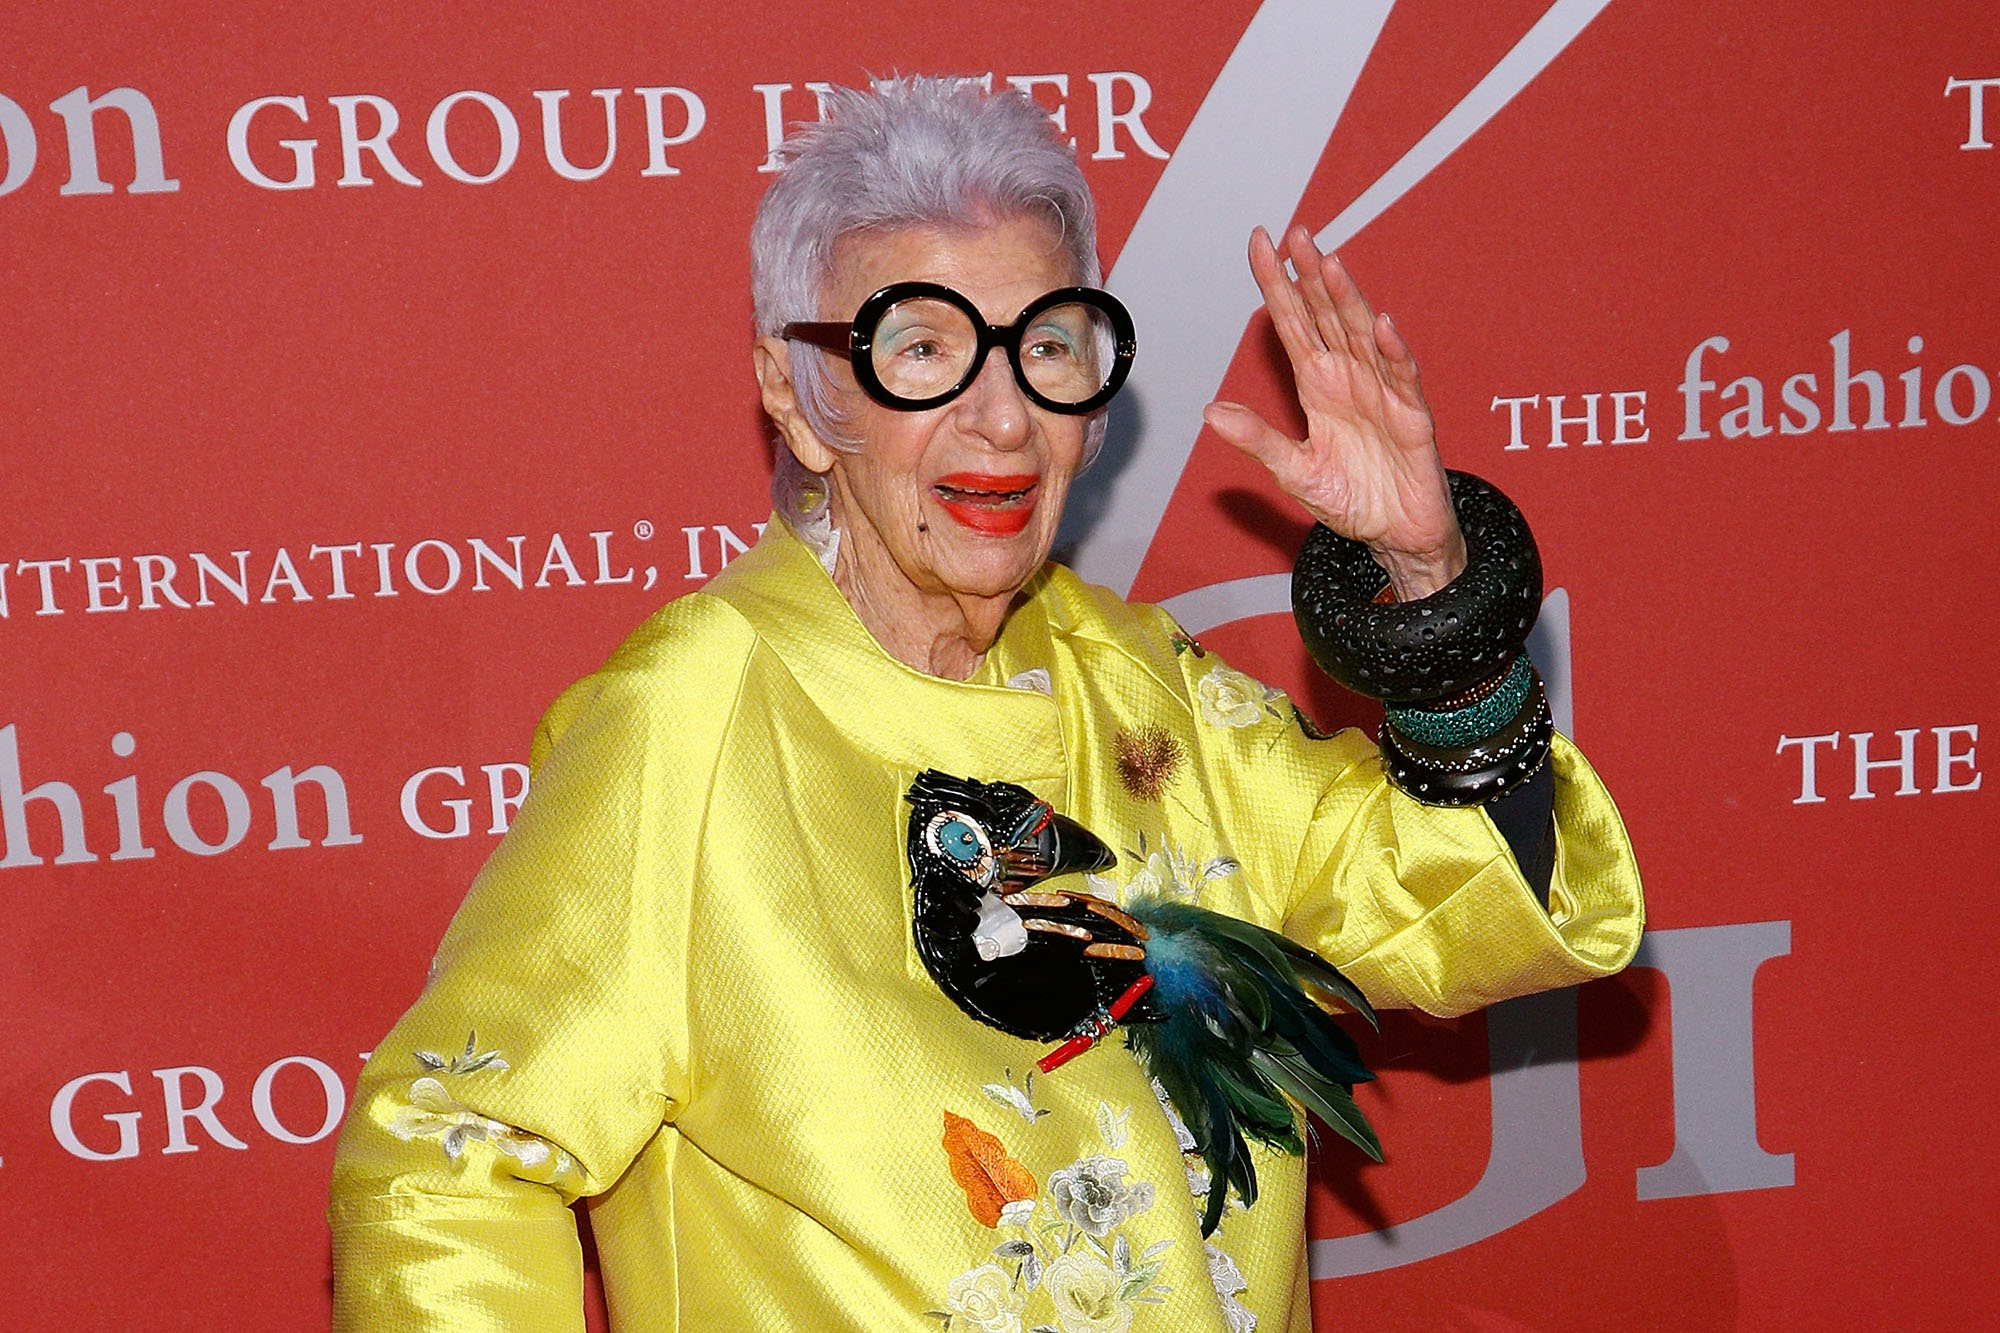 Iris Apfel attends Fashion Group International's 2016 Night of Stars at Cipriani Wall Street on October 27, 2016 in New York City.  (Photo by Taylor Hill/FilmMagic)